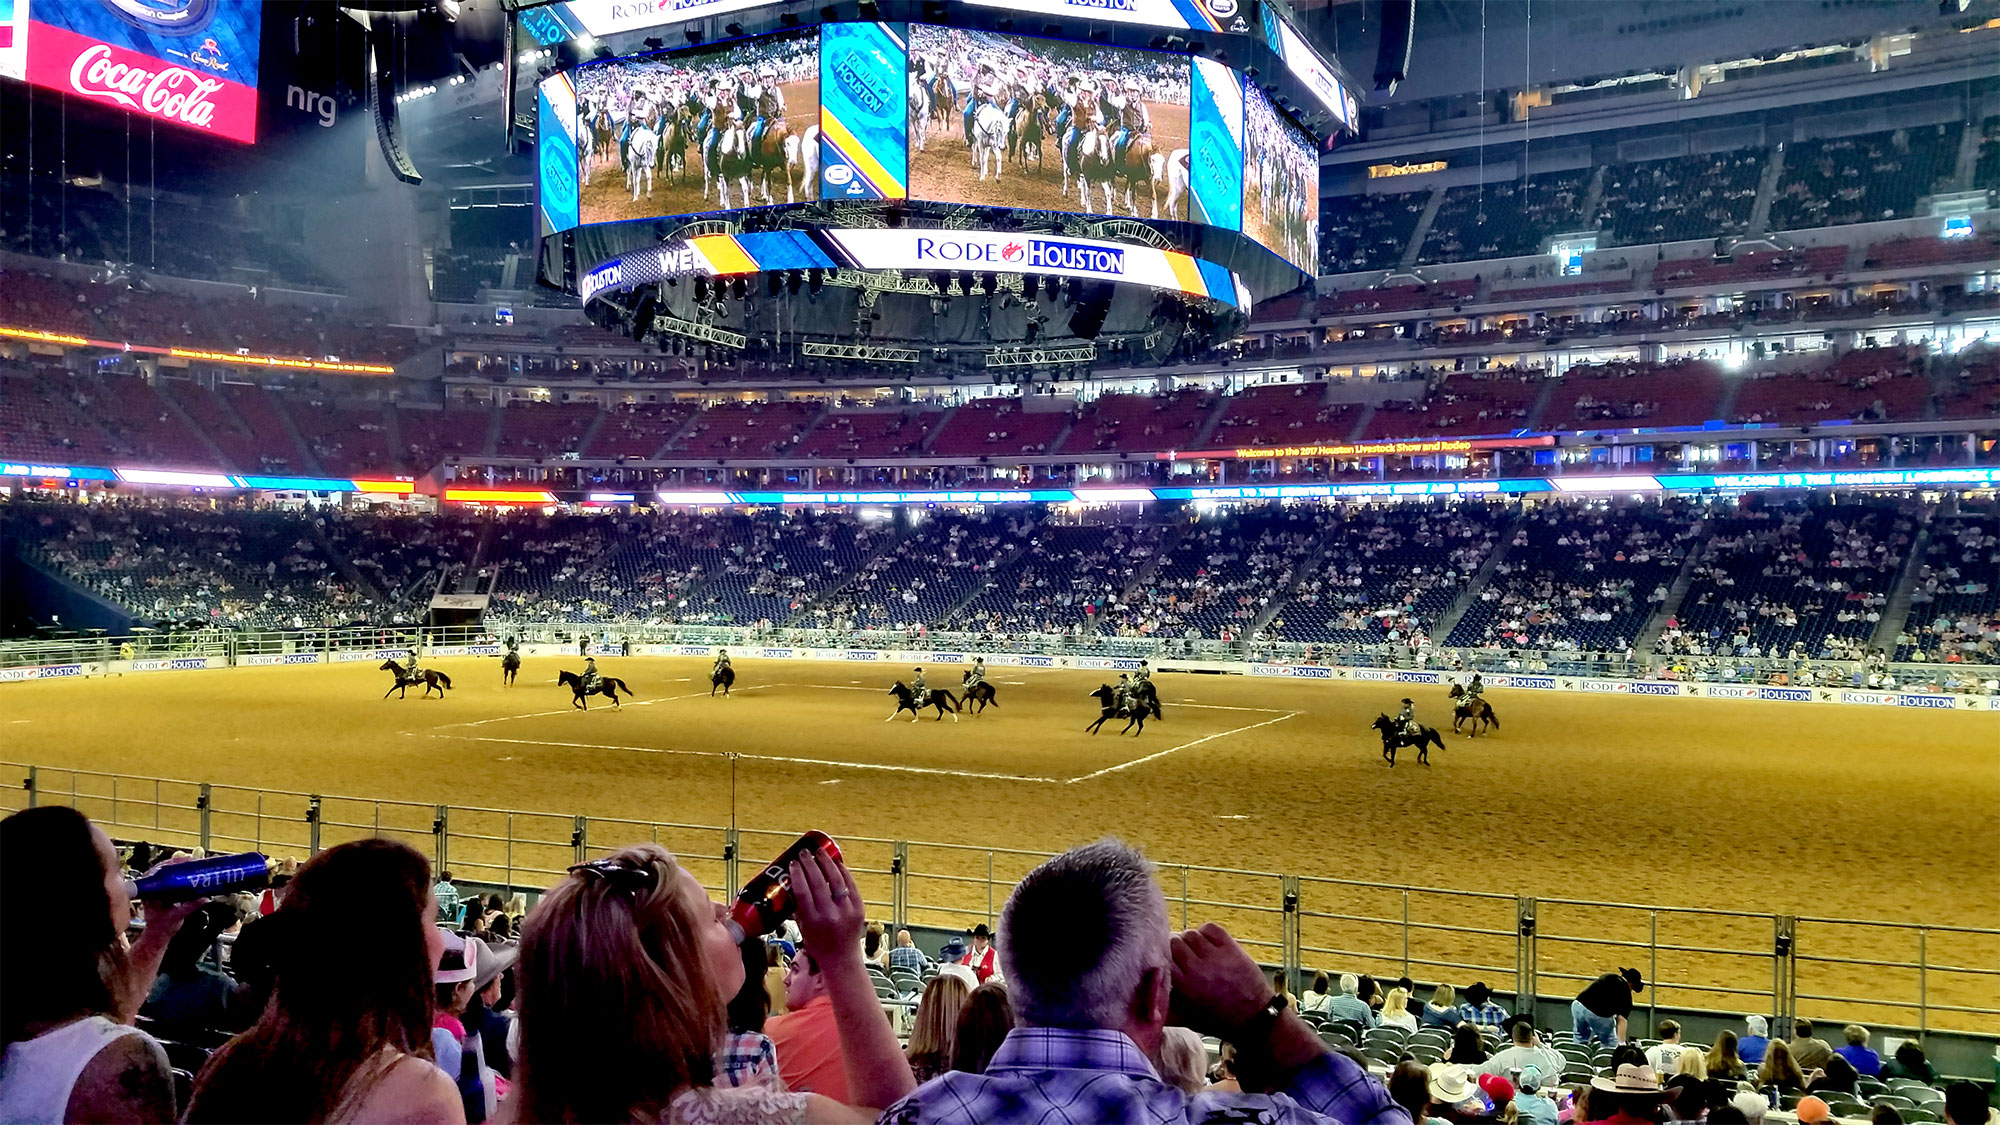 lets-get-ready-to-rodeo rodeo houston 2018